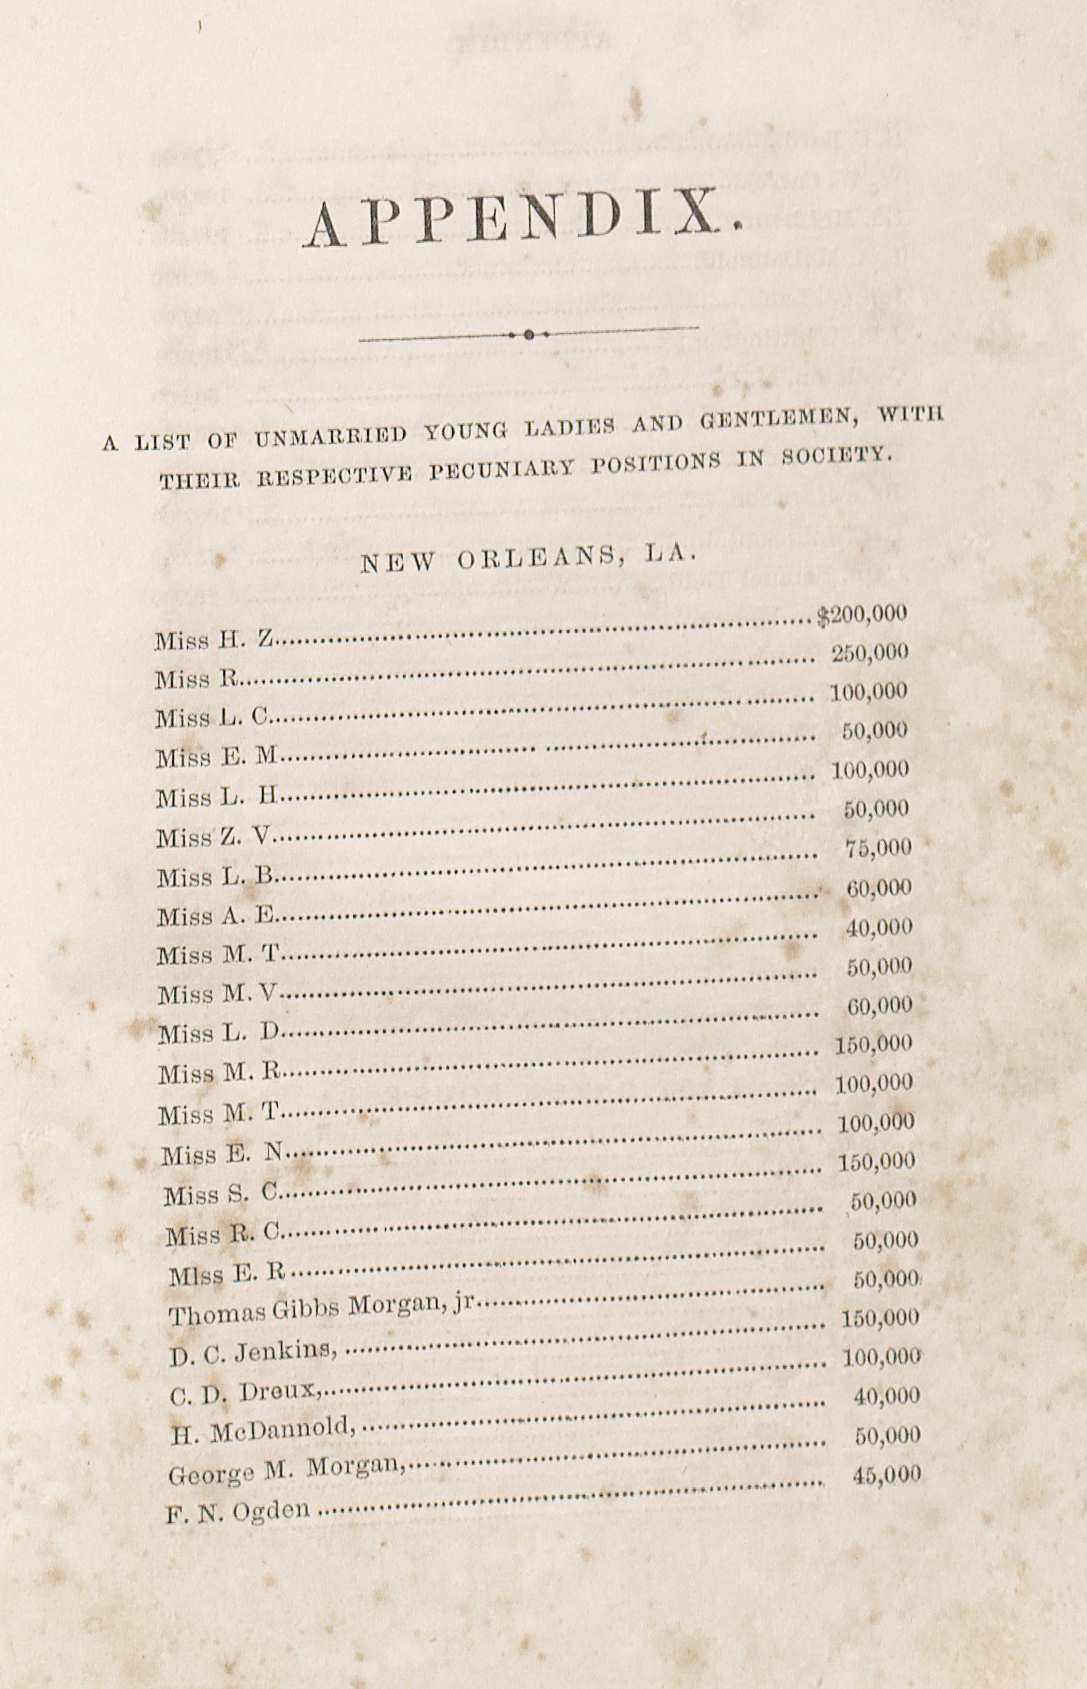 When money is THE object: one way to select a spouse in the Antebellum South, as explicated in S. S. Hall, The bliss of marriage: or, How to get a rich wife. (New Orleans: J. B. Steel, 1858)